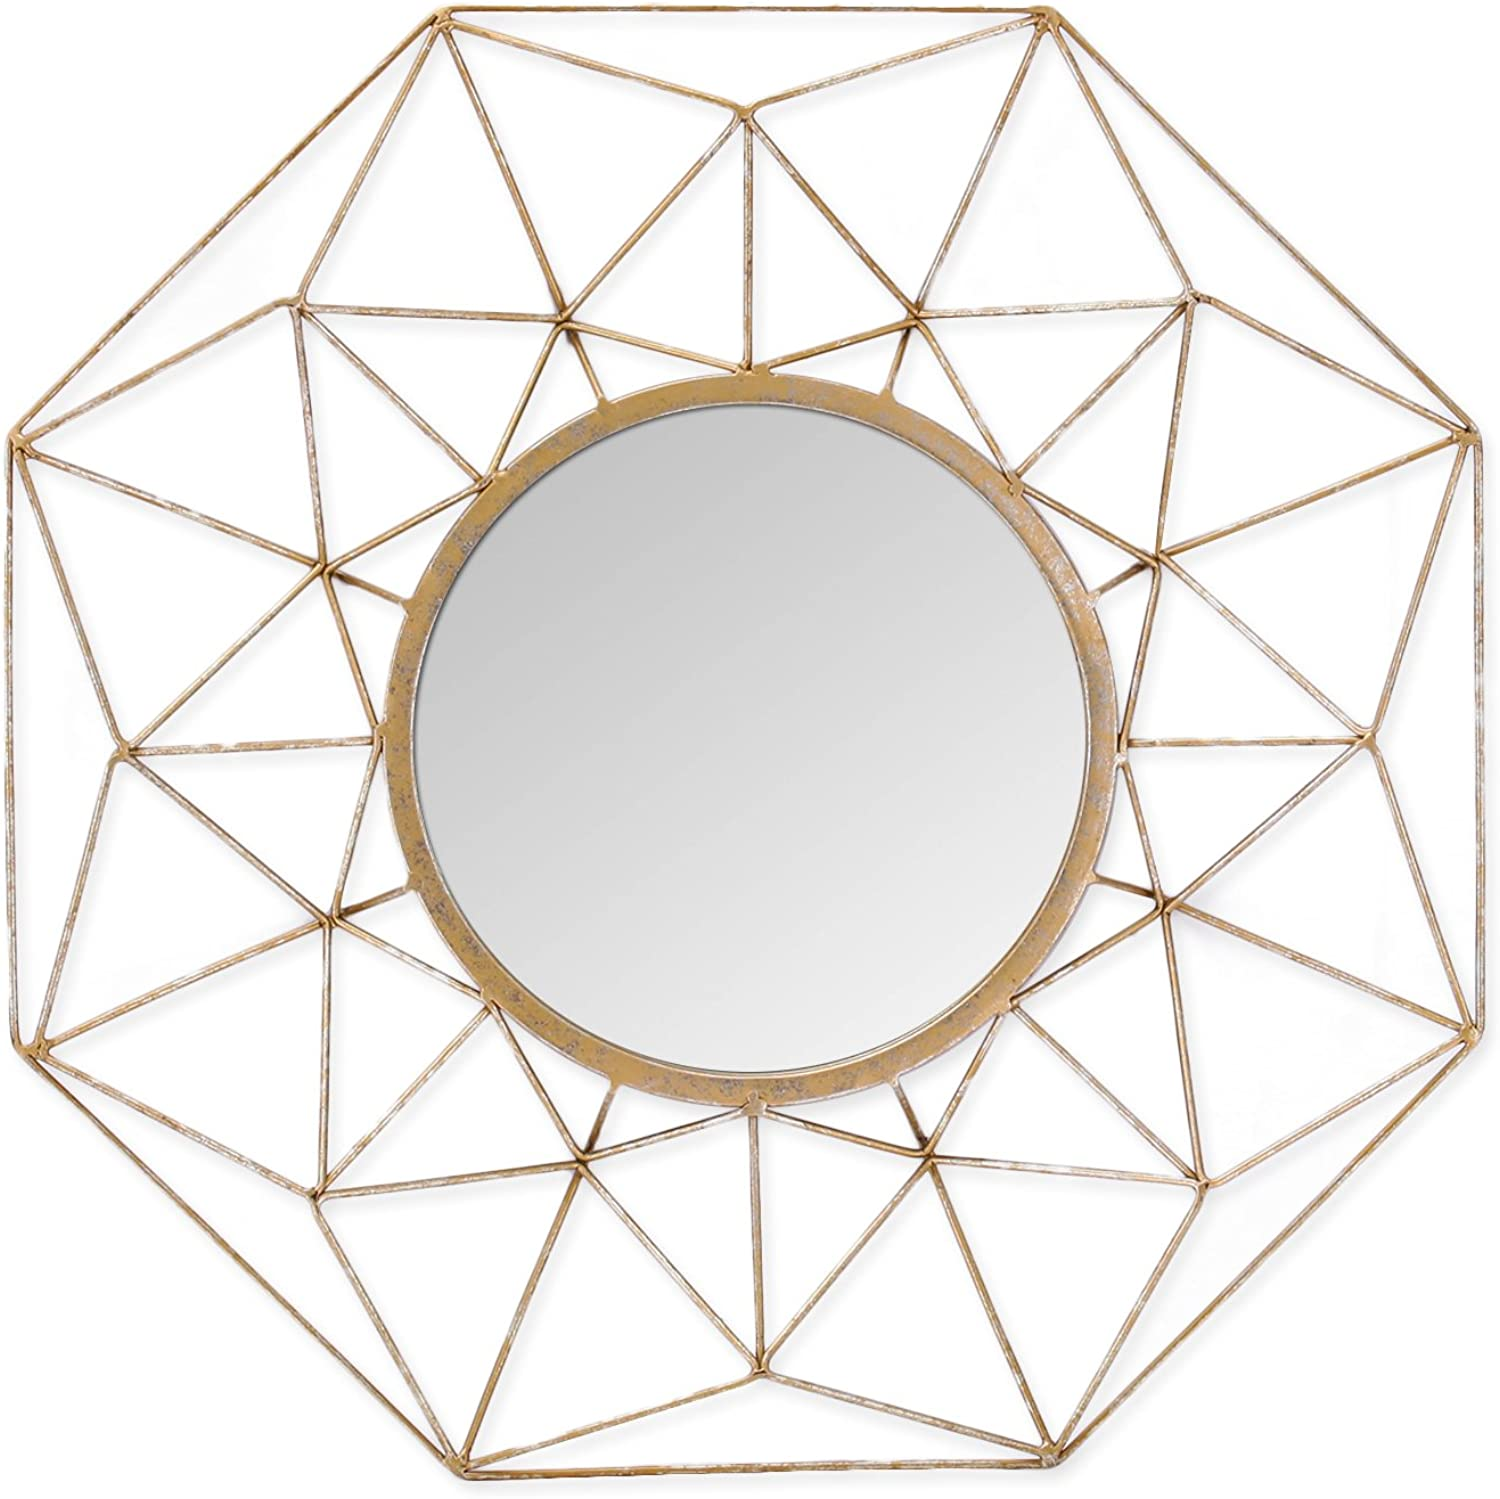 Adeco Decorative Metal Round Wall Sunburst Mirror - gold color - 23.7x23.7 Inches